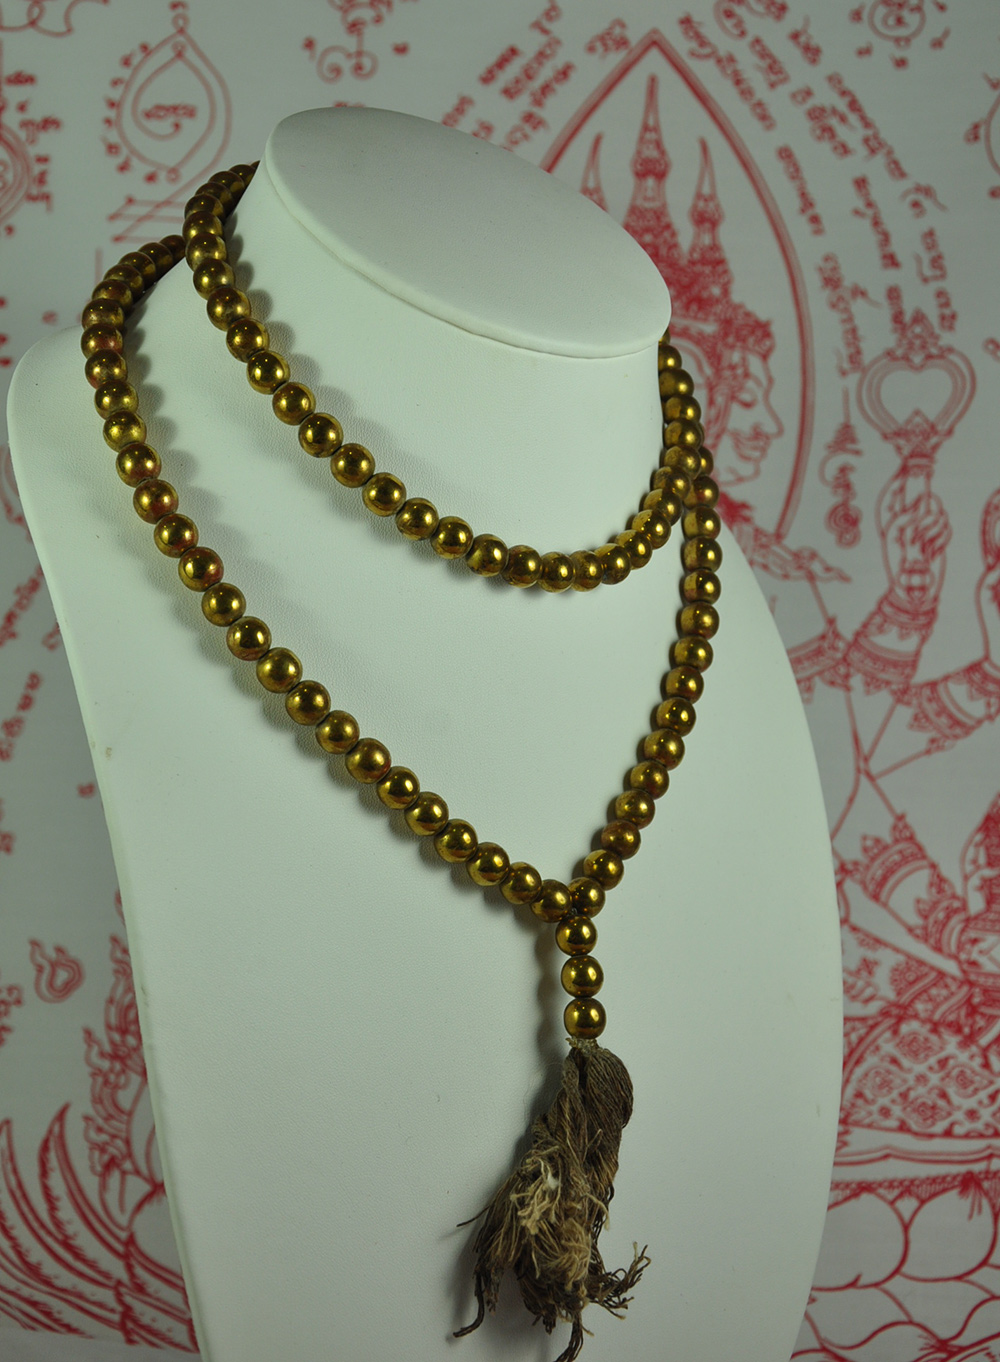 108 Beads Gold Mala Necklace Prayer Praying Leklai Top Thai Amulet jewelry Bead